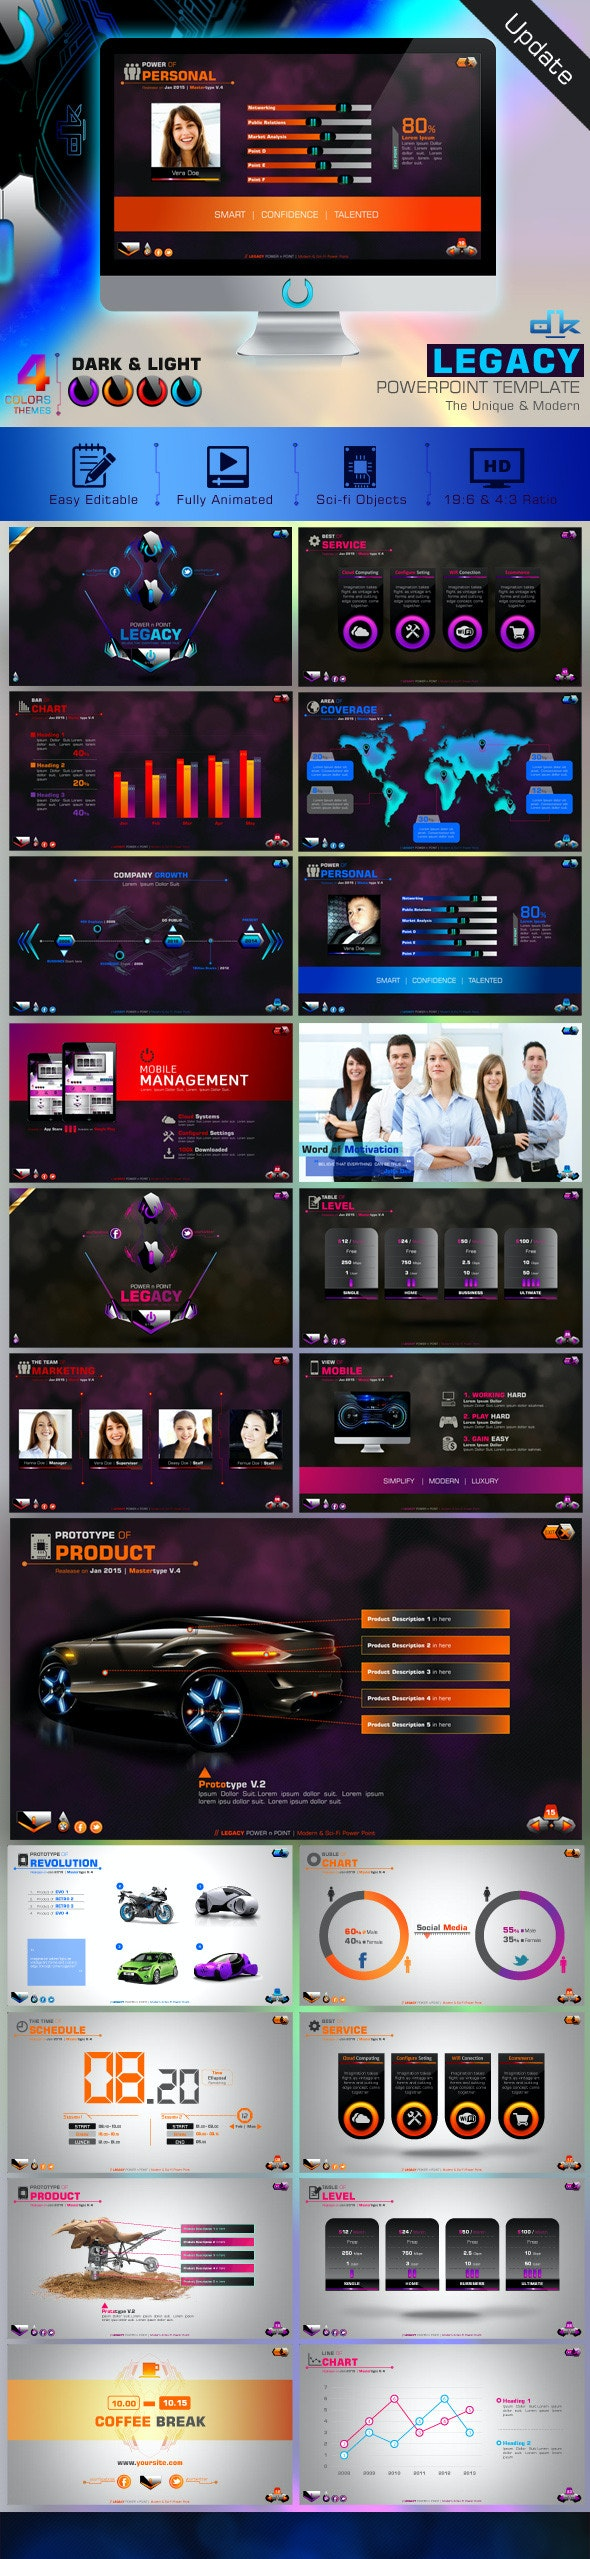 Legacy Powerpoint - Creative PowerPoint Templates